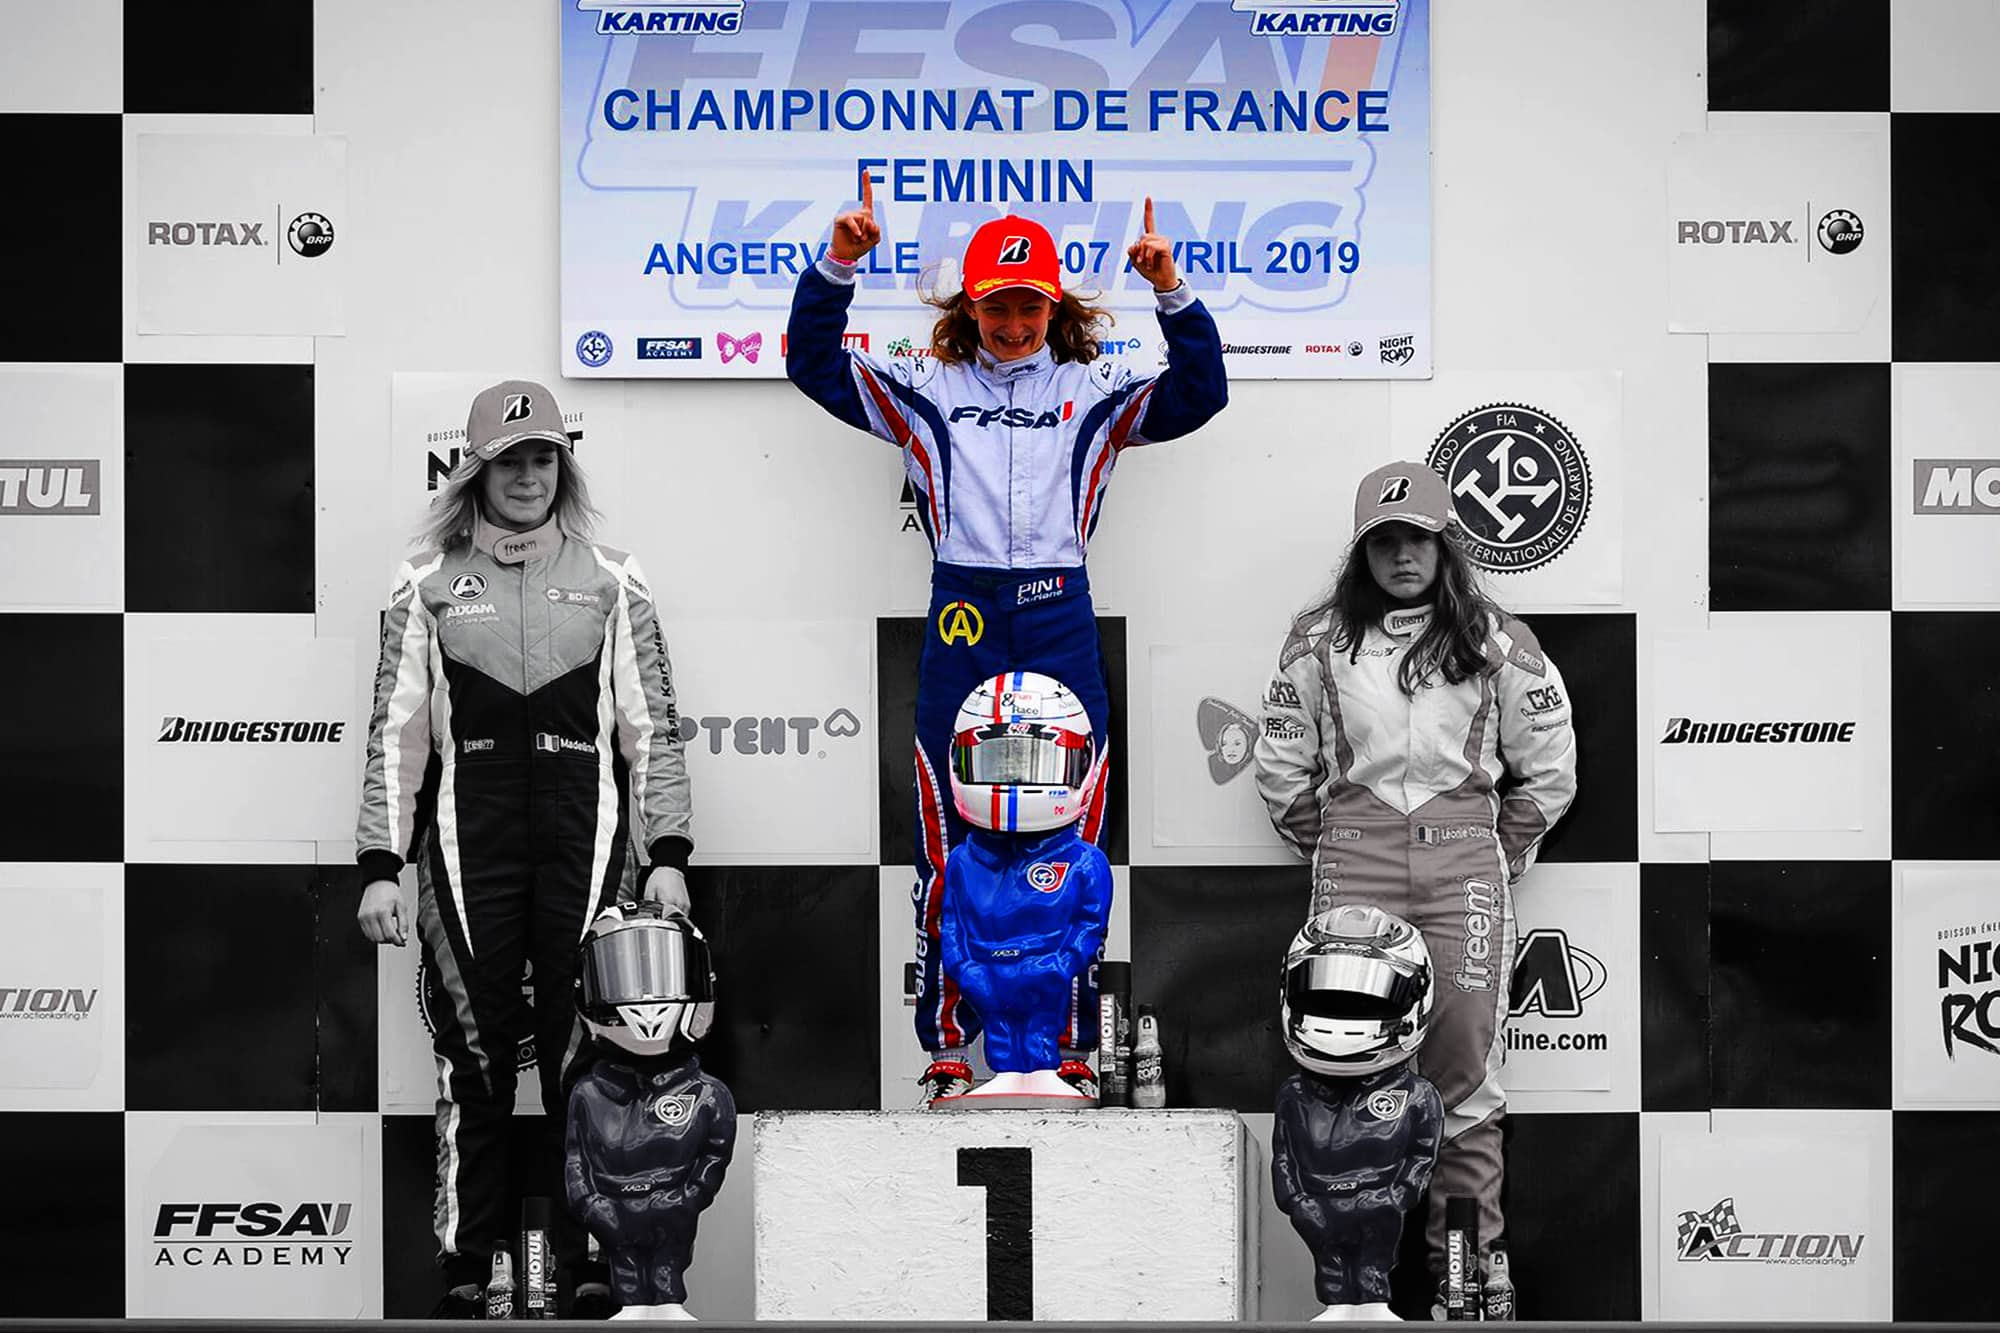 Doriane Pin, French Karting Champion 2019 raising her arms on the first step of the podium